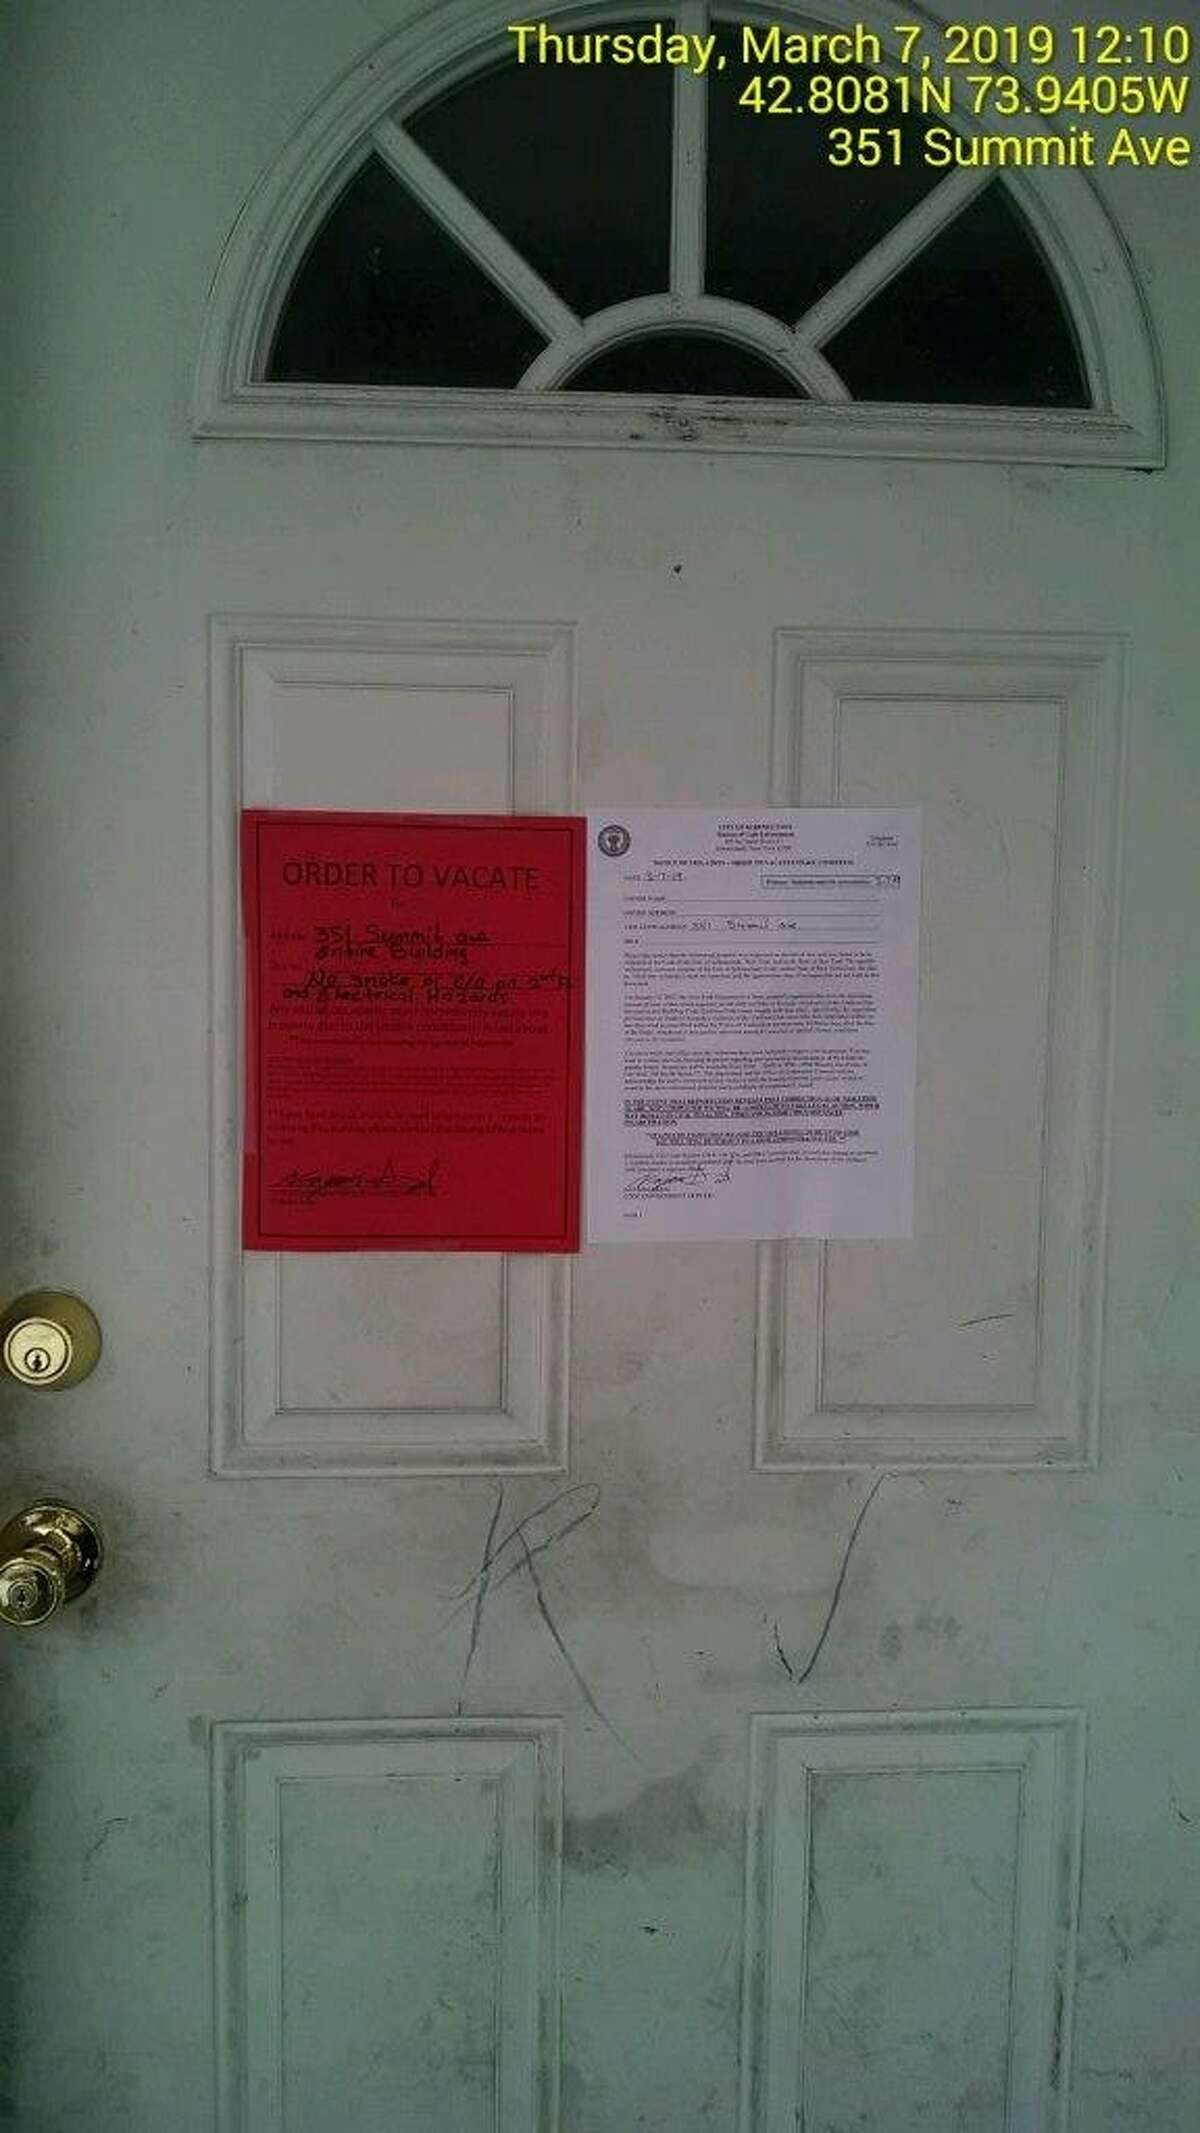 The city of Schenectady posted this order-to-vacate and a list of violations on the front door of a 315 Georgetta Dix (until recently called Summit Avenue) on March 7, 2019. The house was damaged by fire March 27 and torn down March 28.